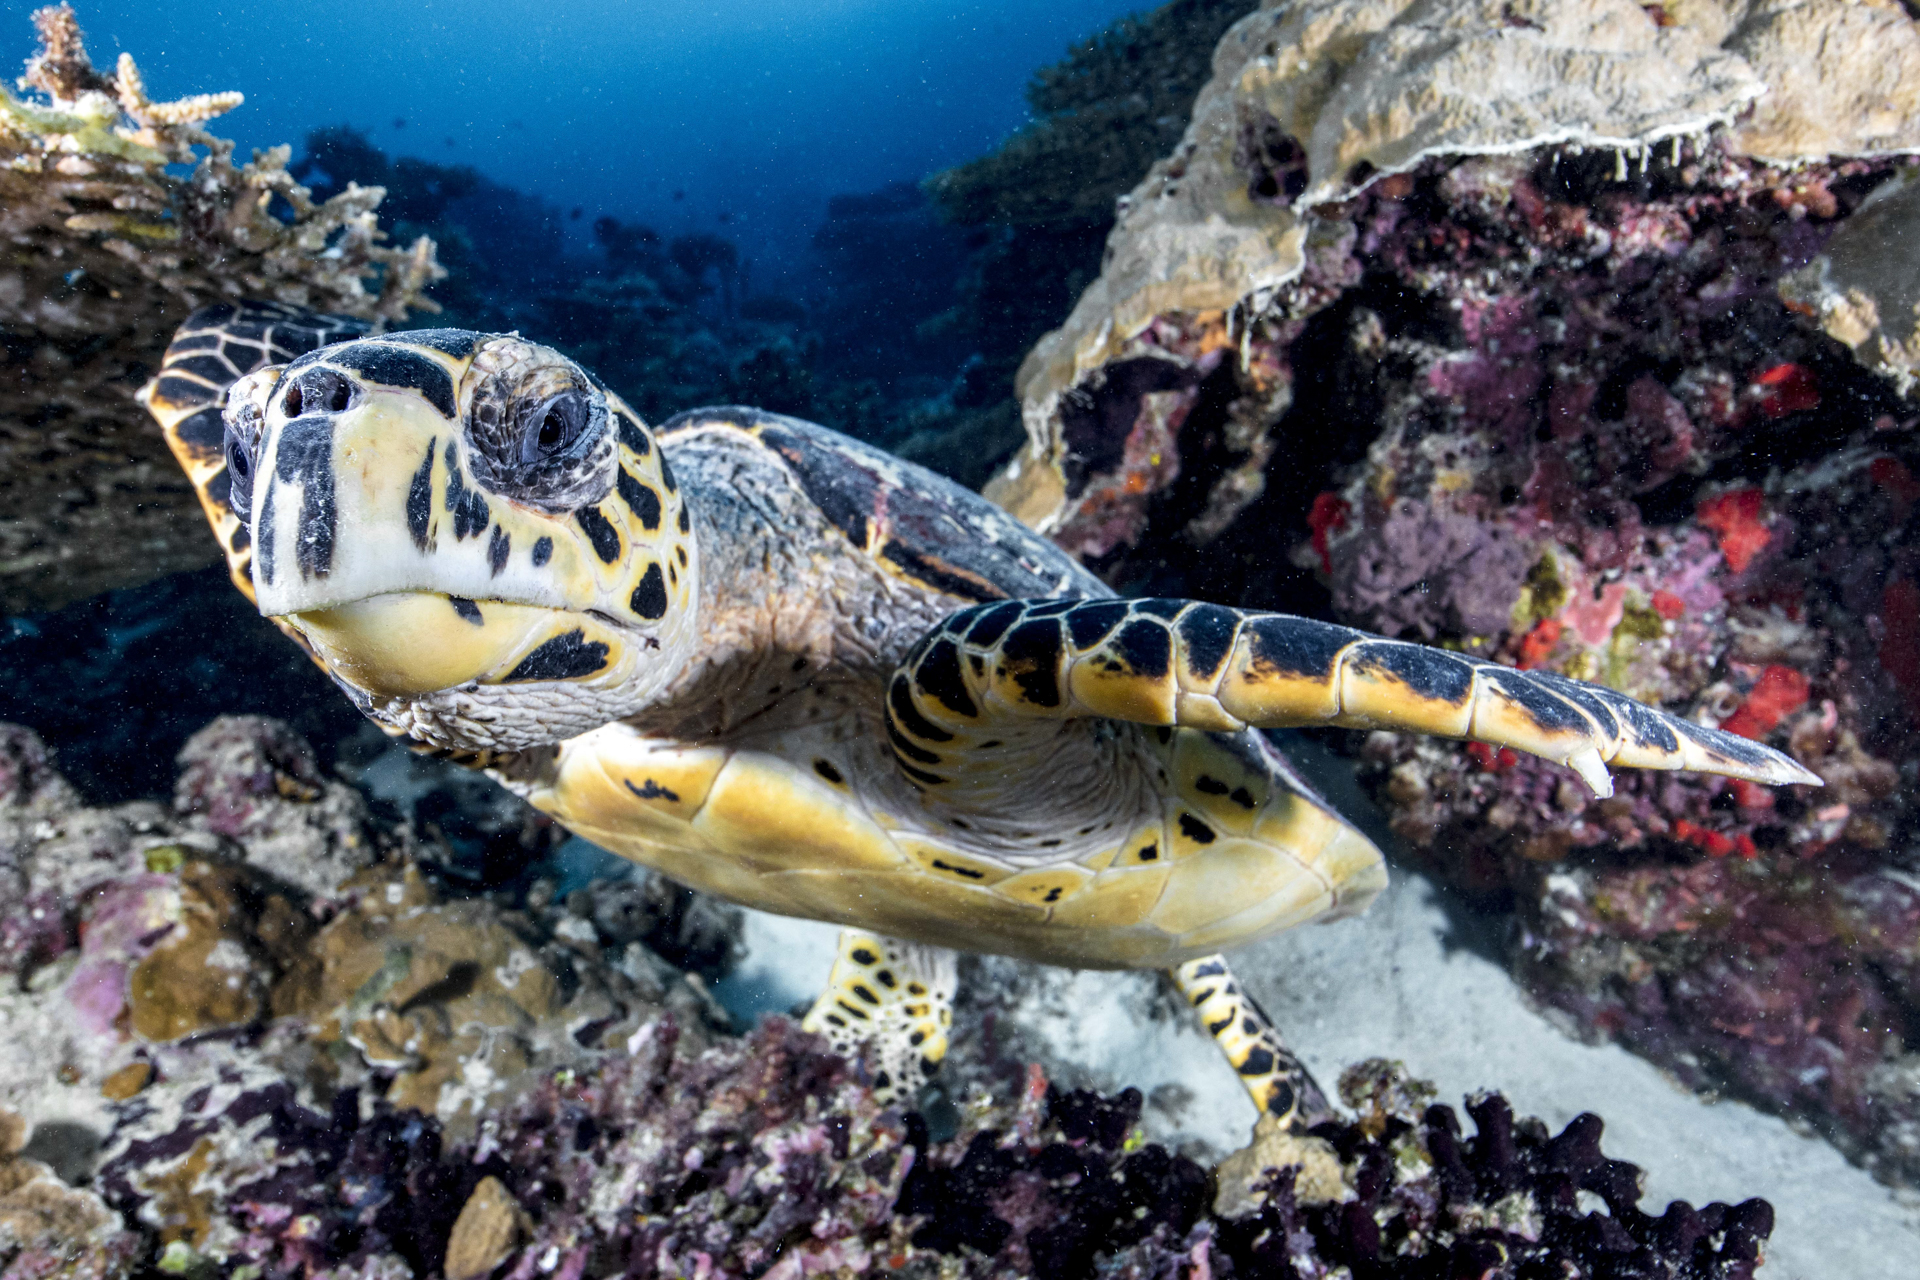 TURTLE SWIMMING credit: david p. robinson / coral reef image bank